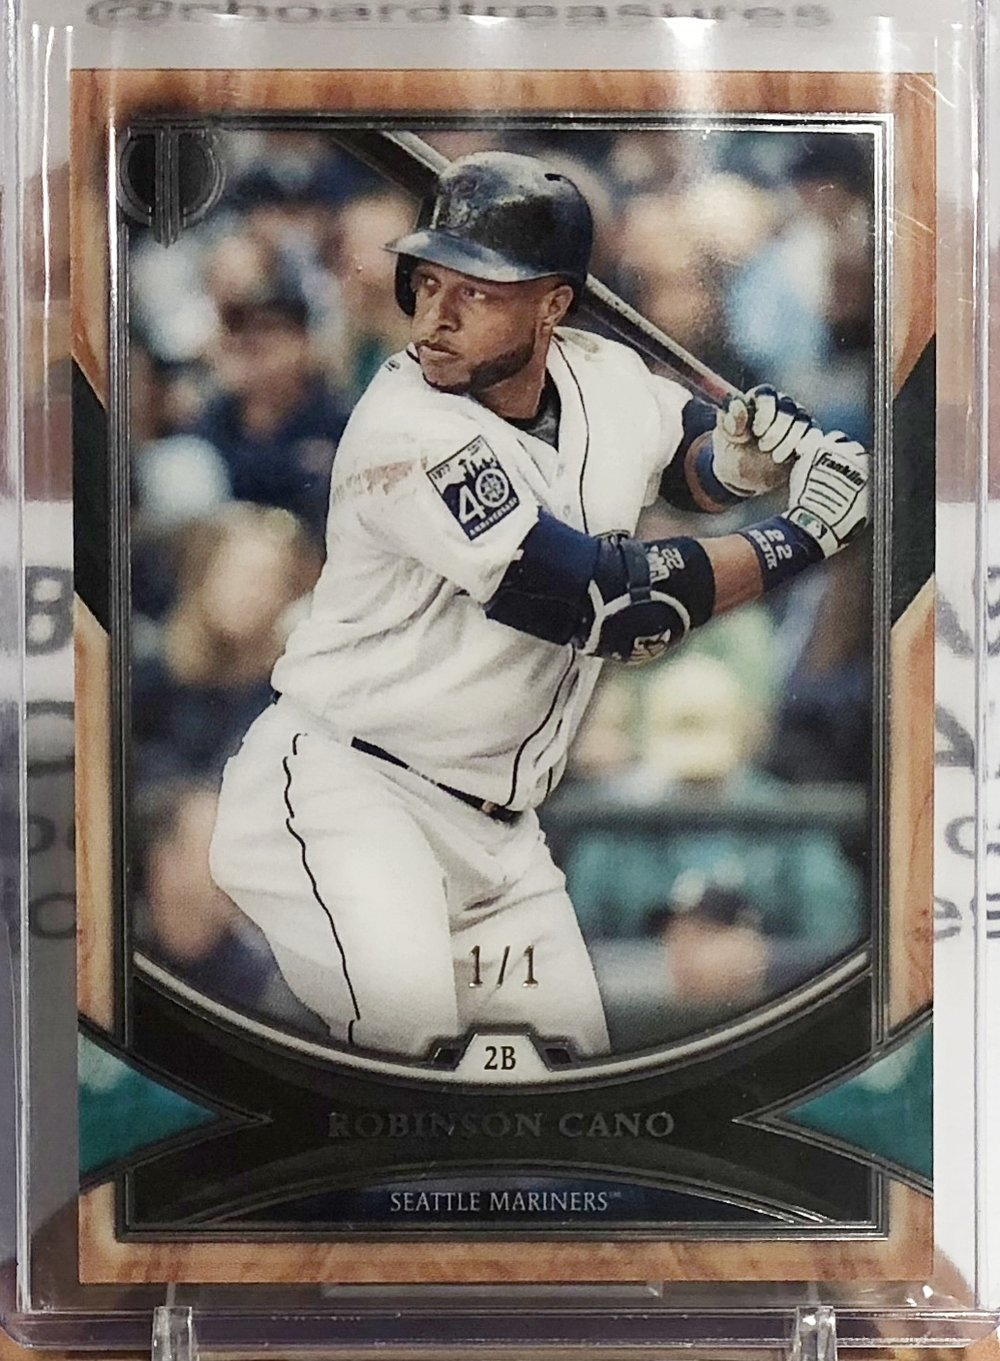 2018 Topps Tribute Robinson Cano Black 1/1